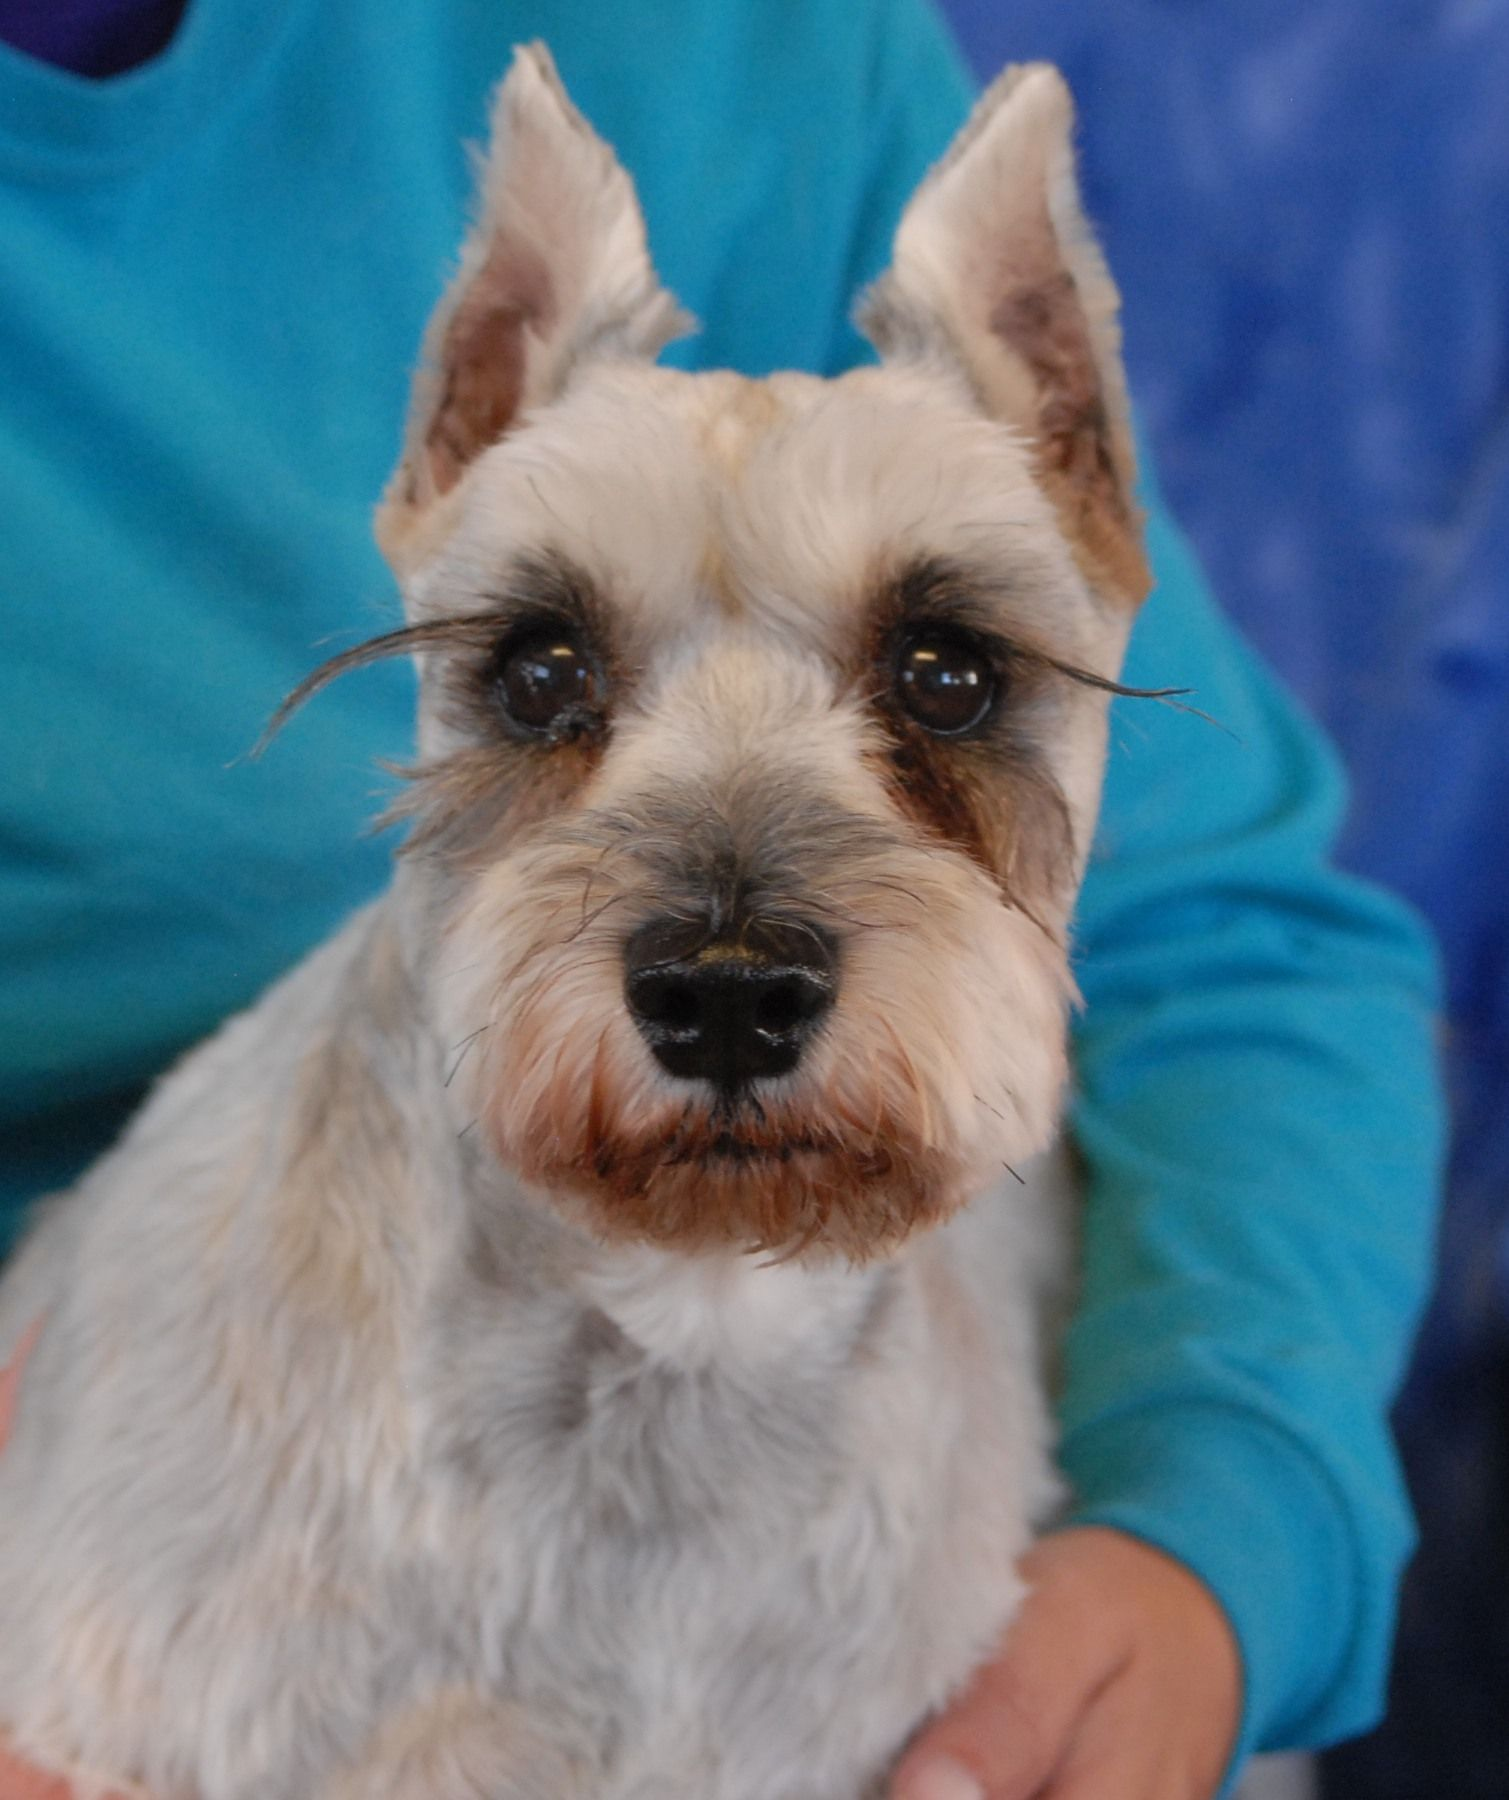 Wyatt is a gentle older boy debuting for adoption today at Nevada SPCA (www.nevadaspca.org).  He is a Miniature Schnauzer, about 10 years of age and neutered.  Wyatt likes other friendly dogs and needs continued regular professional grooming.  He lost his previous home because he reportedly does not like children.  Instead, Wyatt likes being around adults and seems best-suited for a calm home environment.